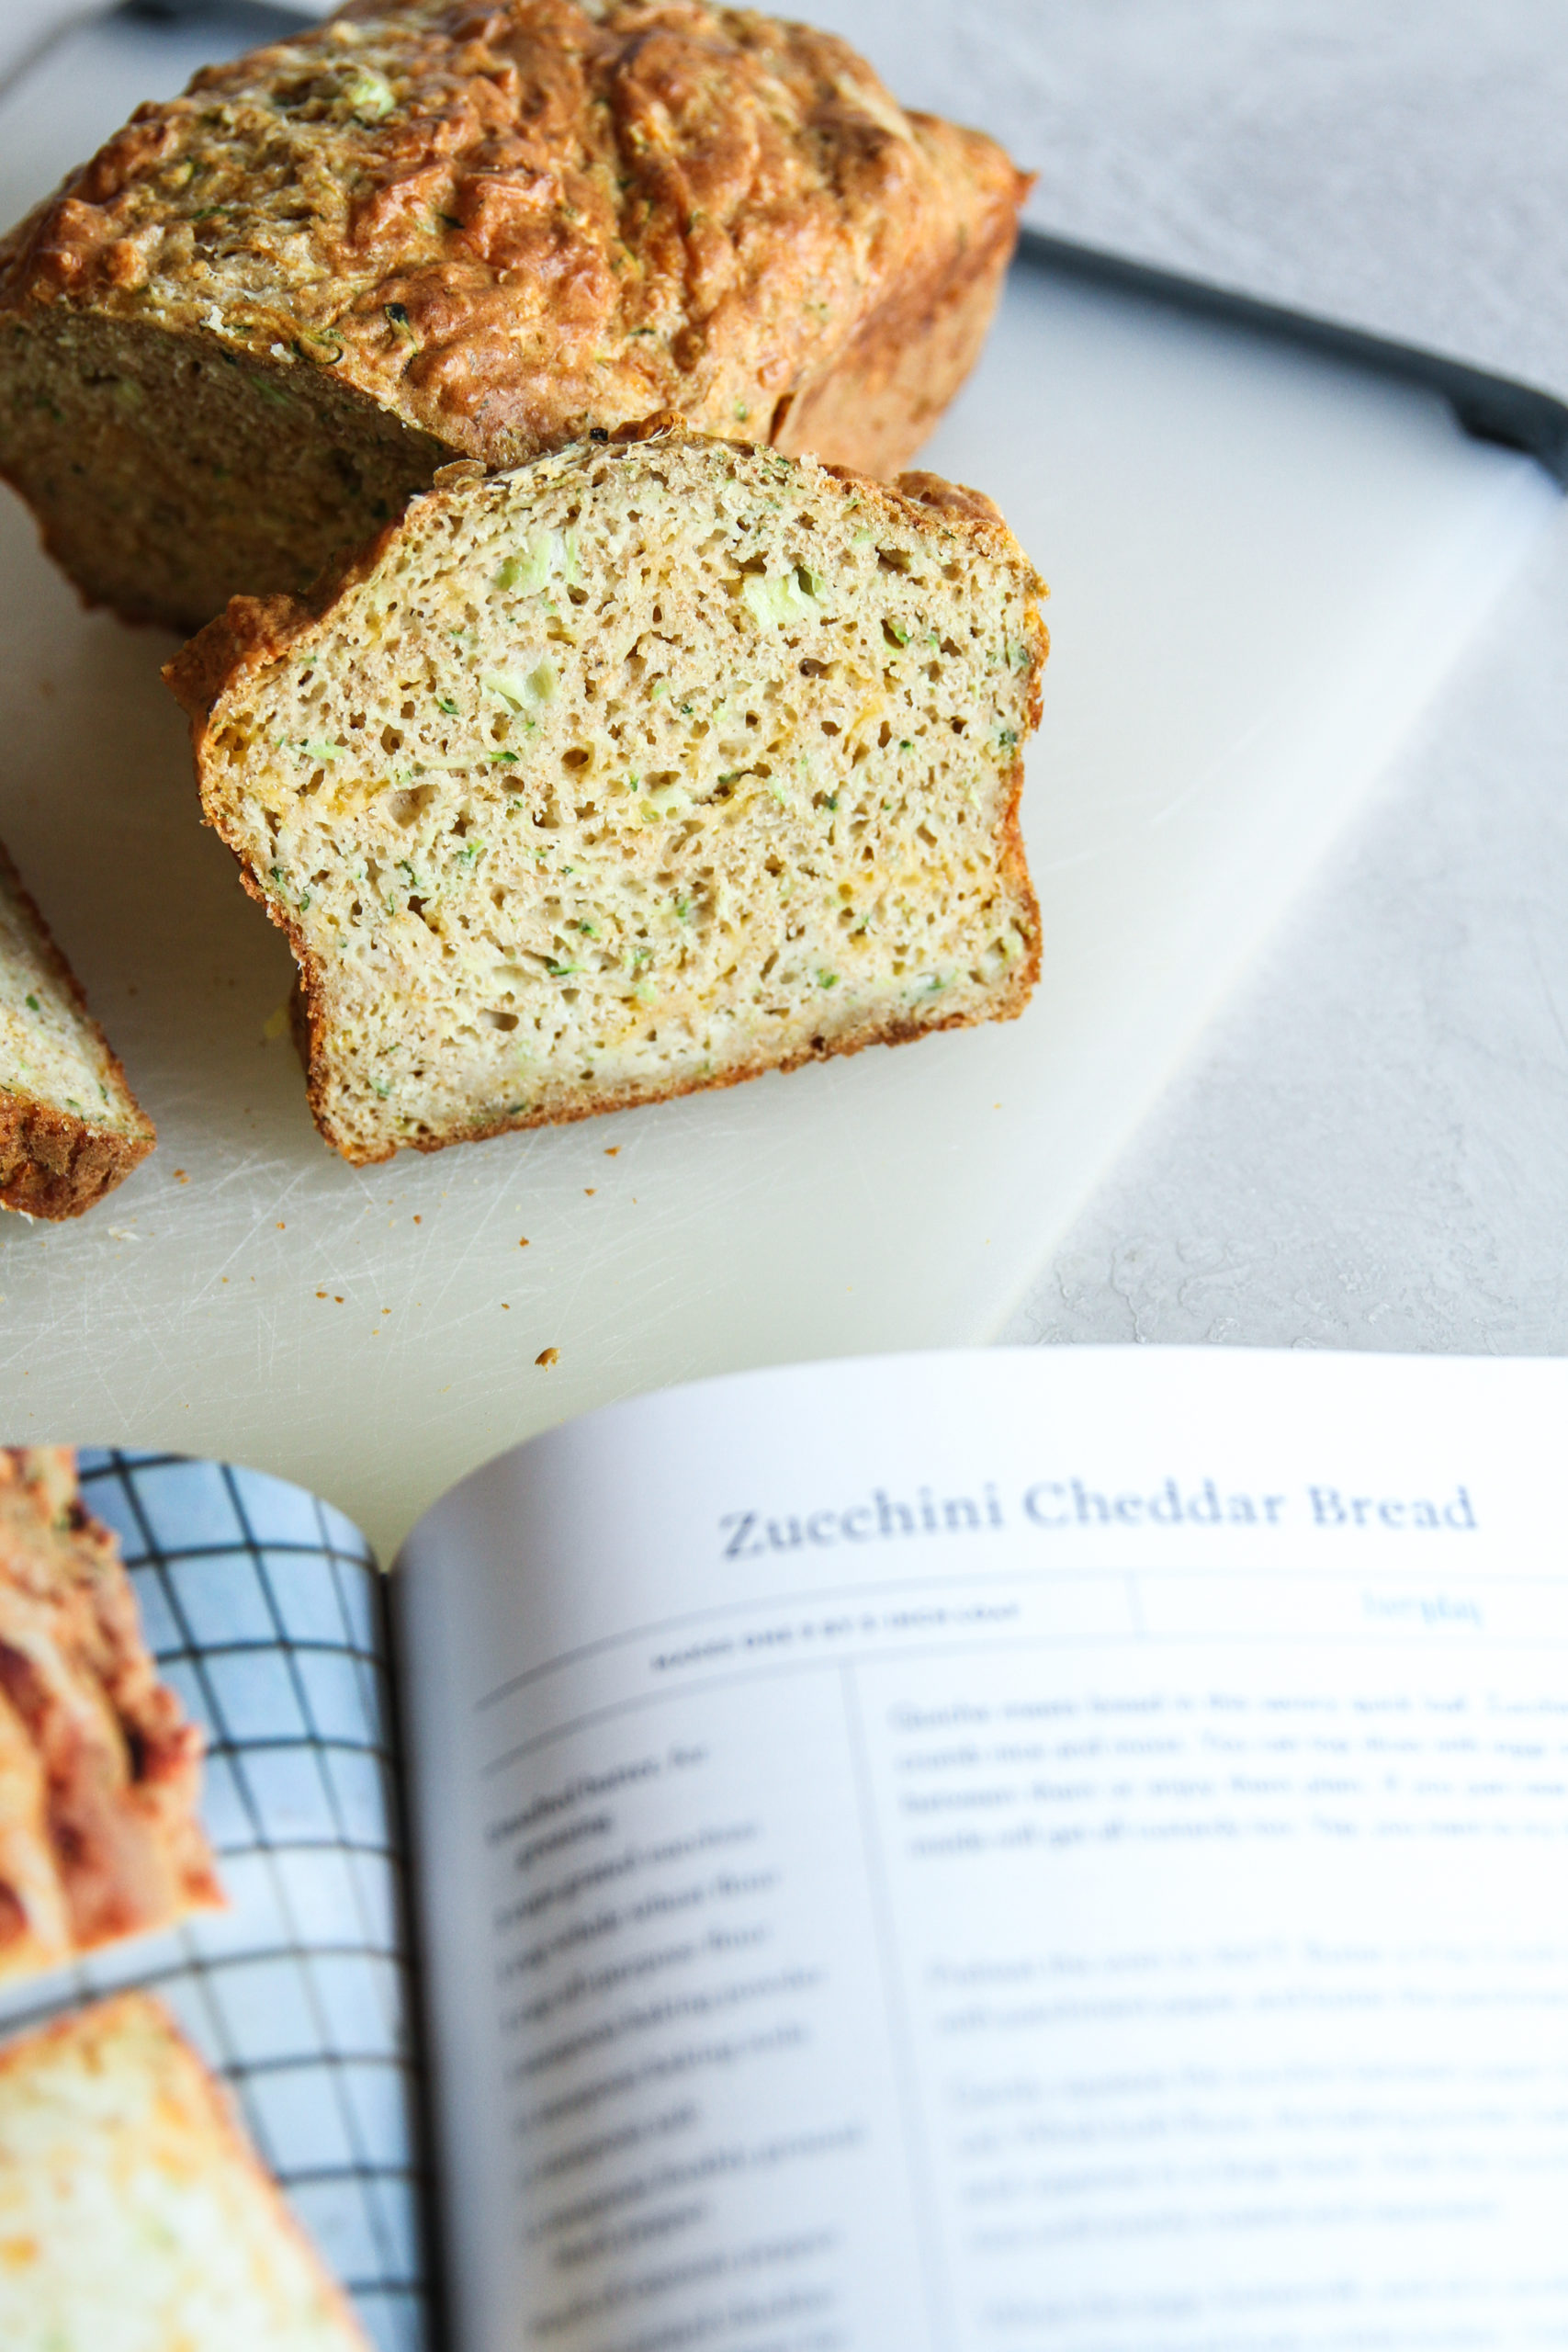 How to make the best zucchini cheddar bread